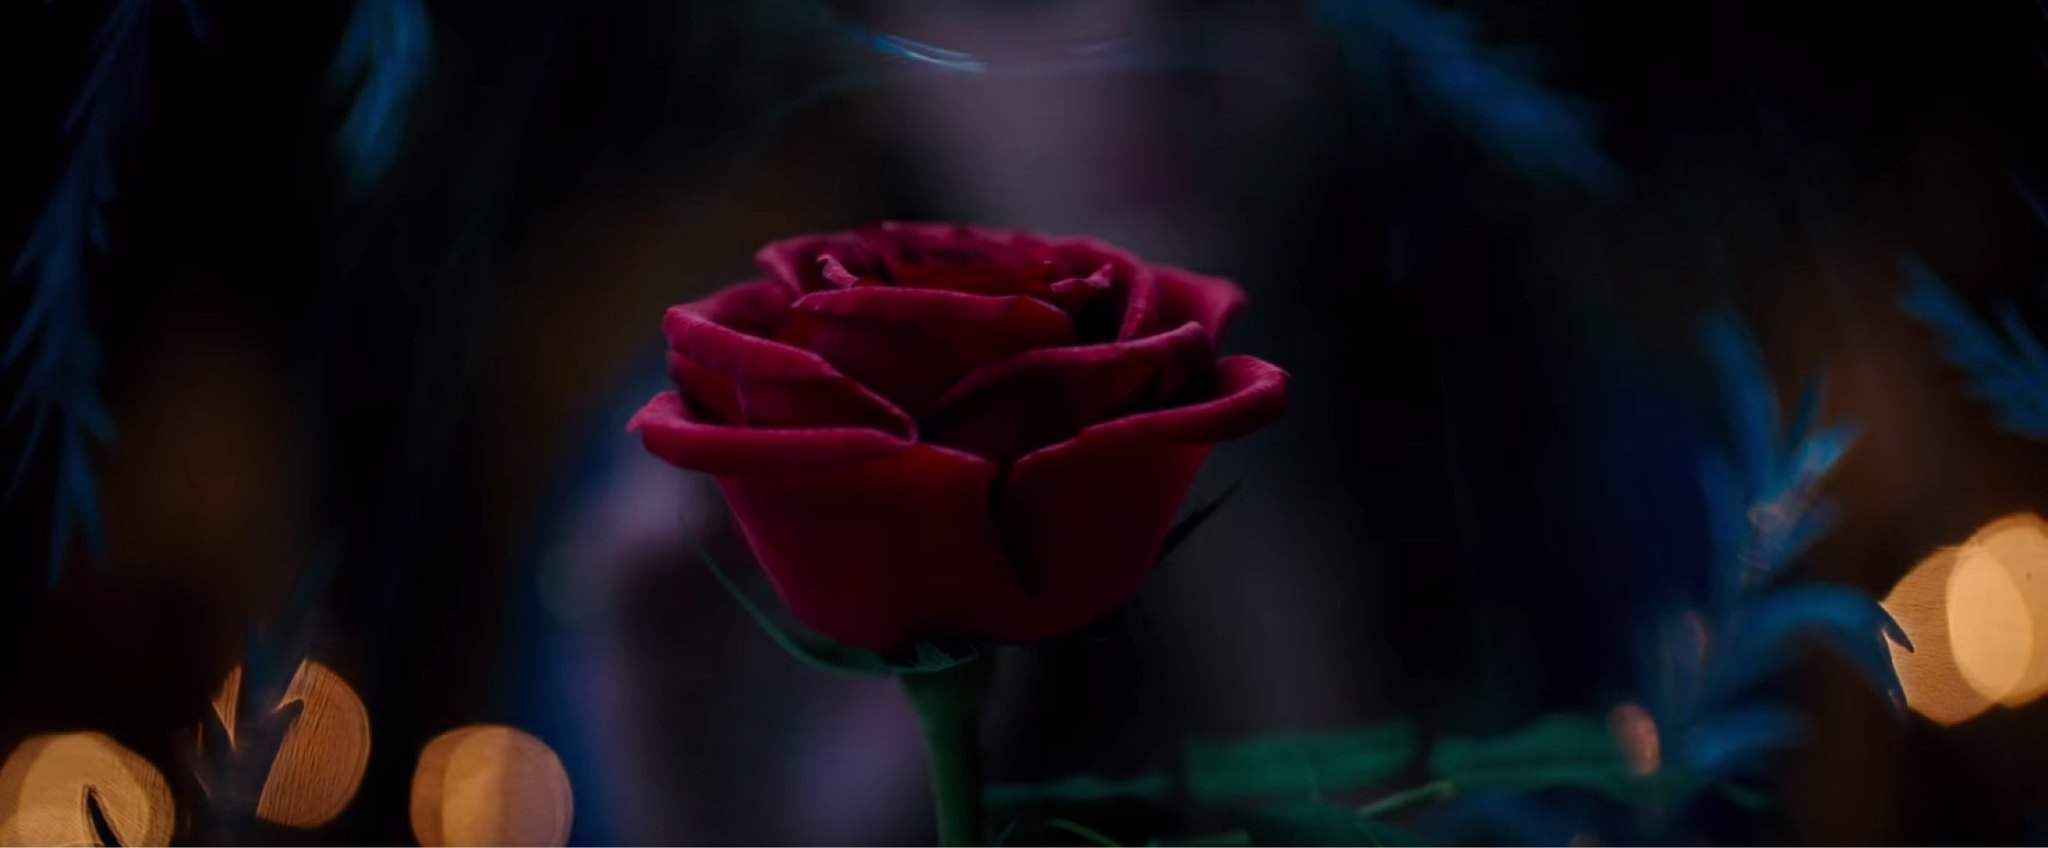 Disney's Live-Action Beauty and the Beast Teaser Trailer